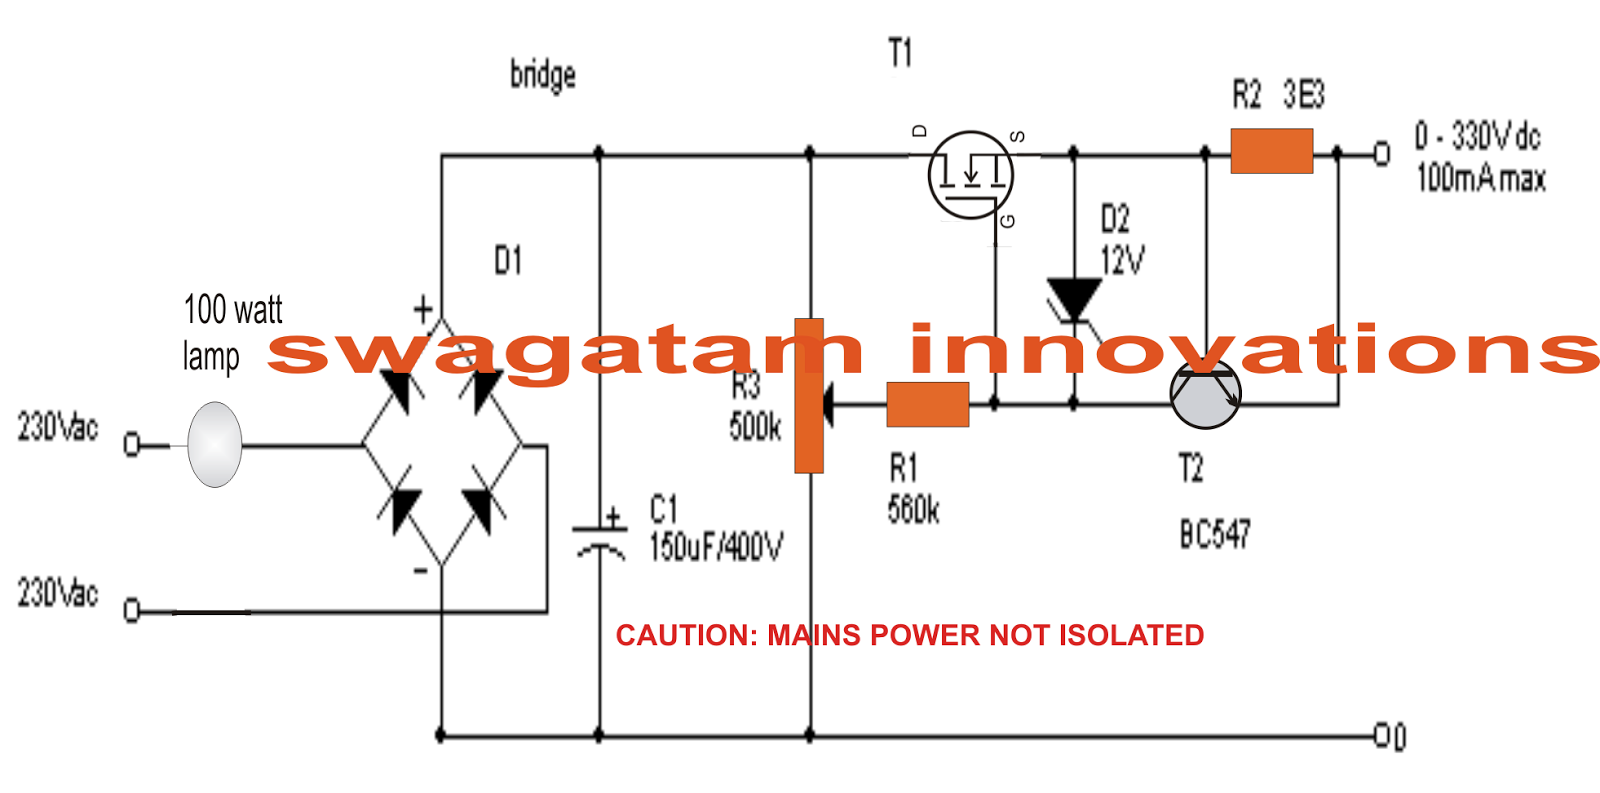 High Current Voltage Regulation further Coulombs Law likewise Circuit Power Supply Regulated Low Dropout Positive Adjustable Regulators Lt1083 further 5v 12v Dc Dual Output Power Supply Using Lm7805 Lm7812 further 12v 5a Power Supply Using Lm338. on variable voltage regulator circuit diagram